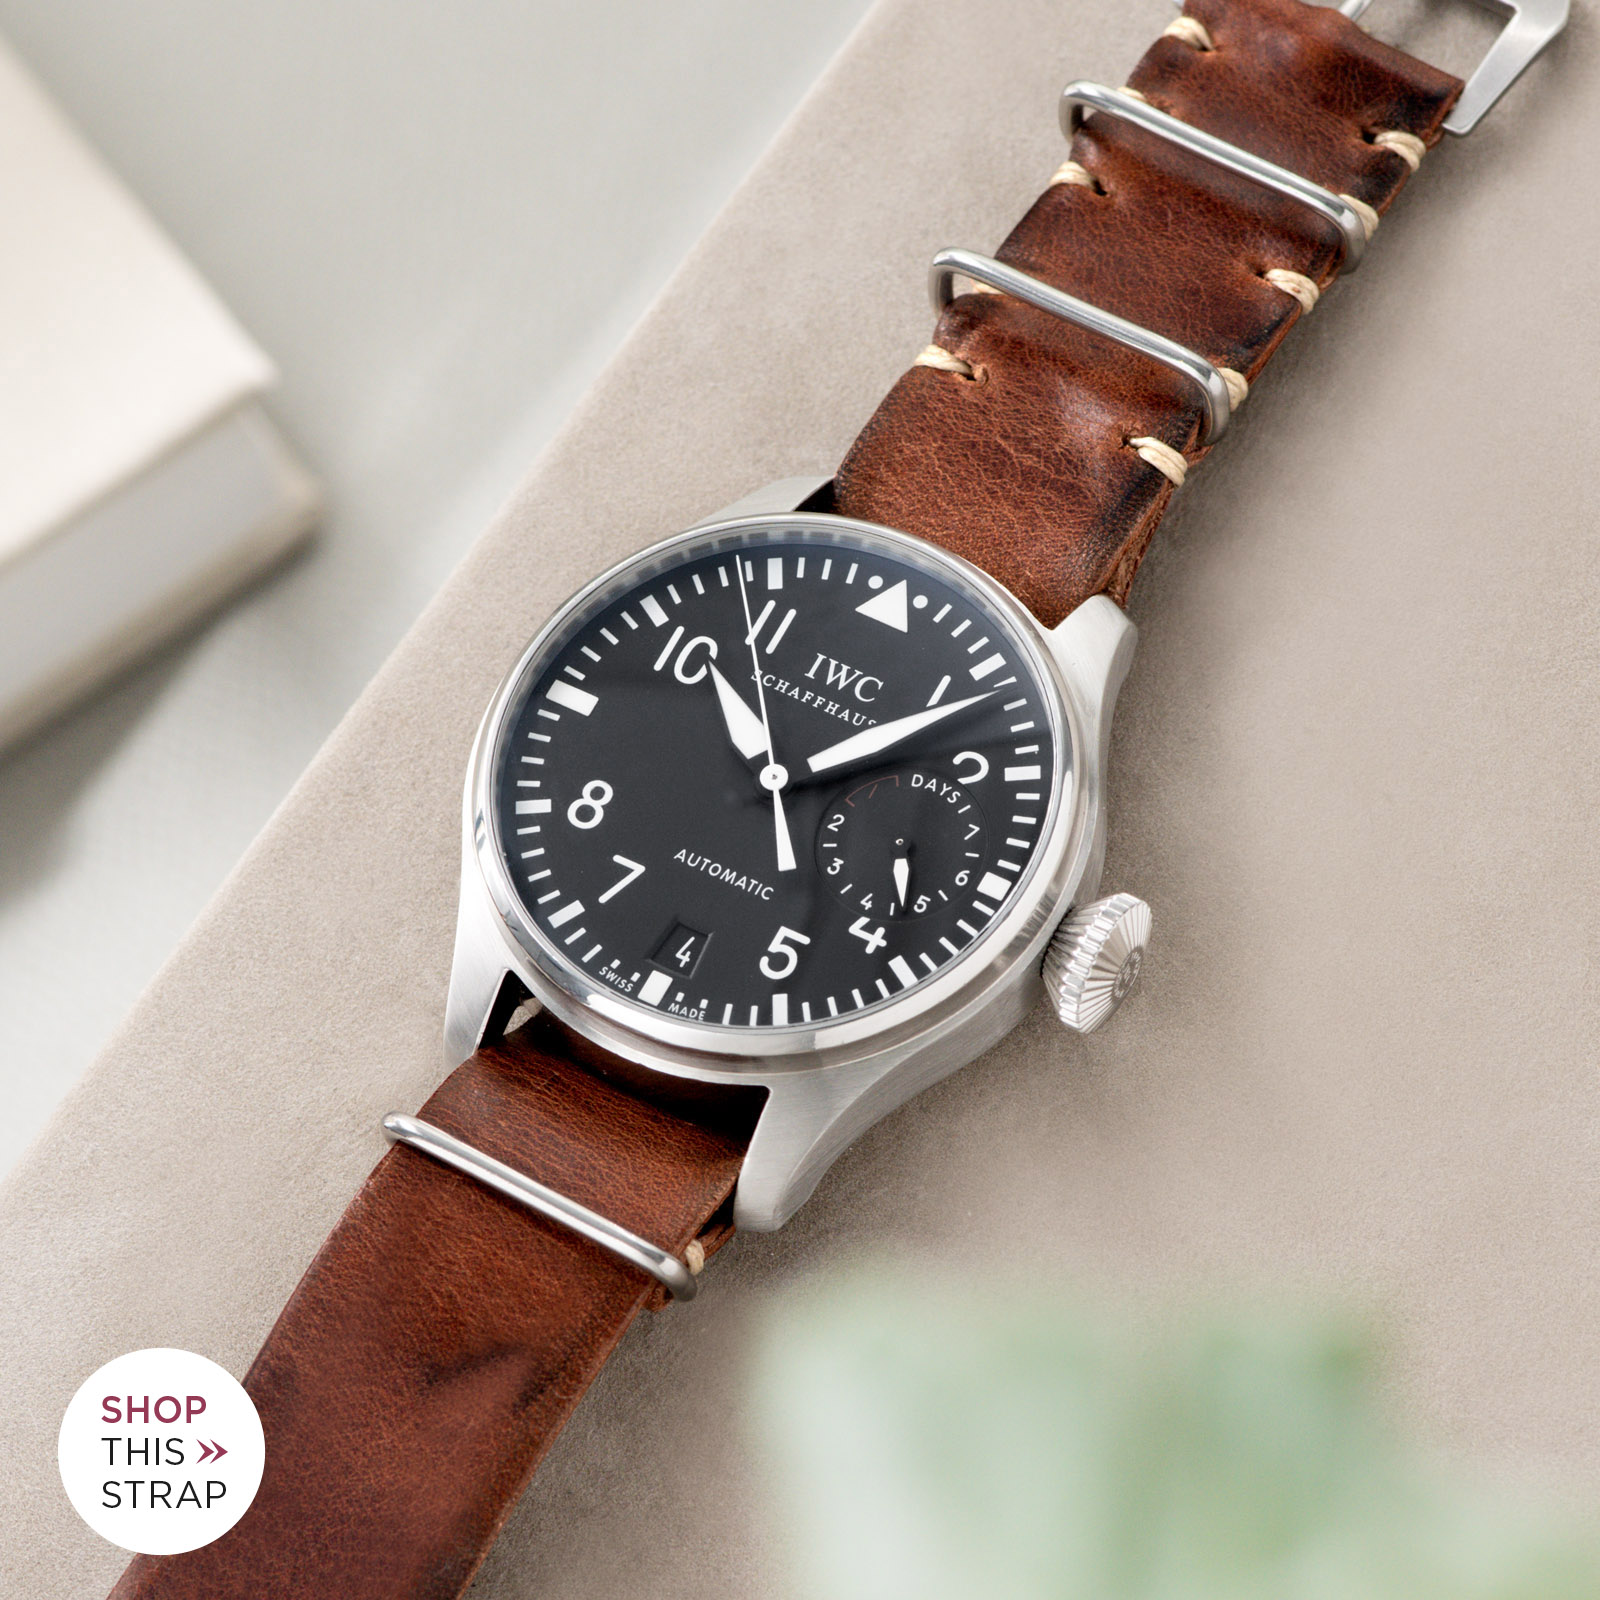 Bulang and Sons_Strap Guide_IWC Big Pilot ref IW5004_Siena Brown Nato Leather Watch Strap